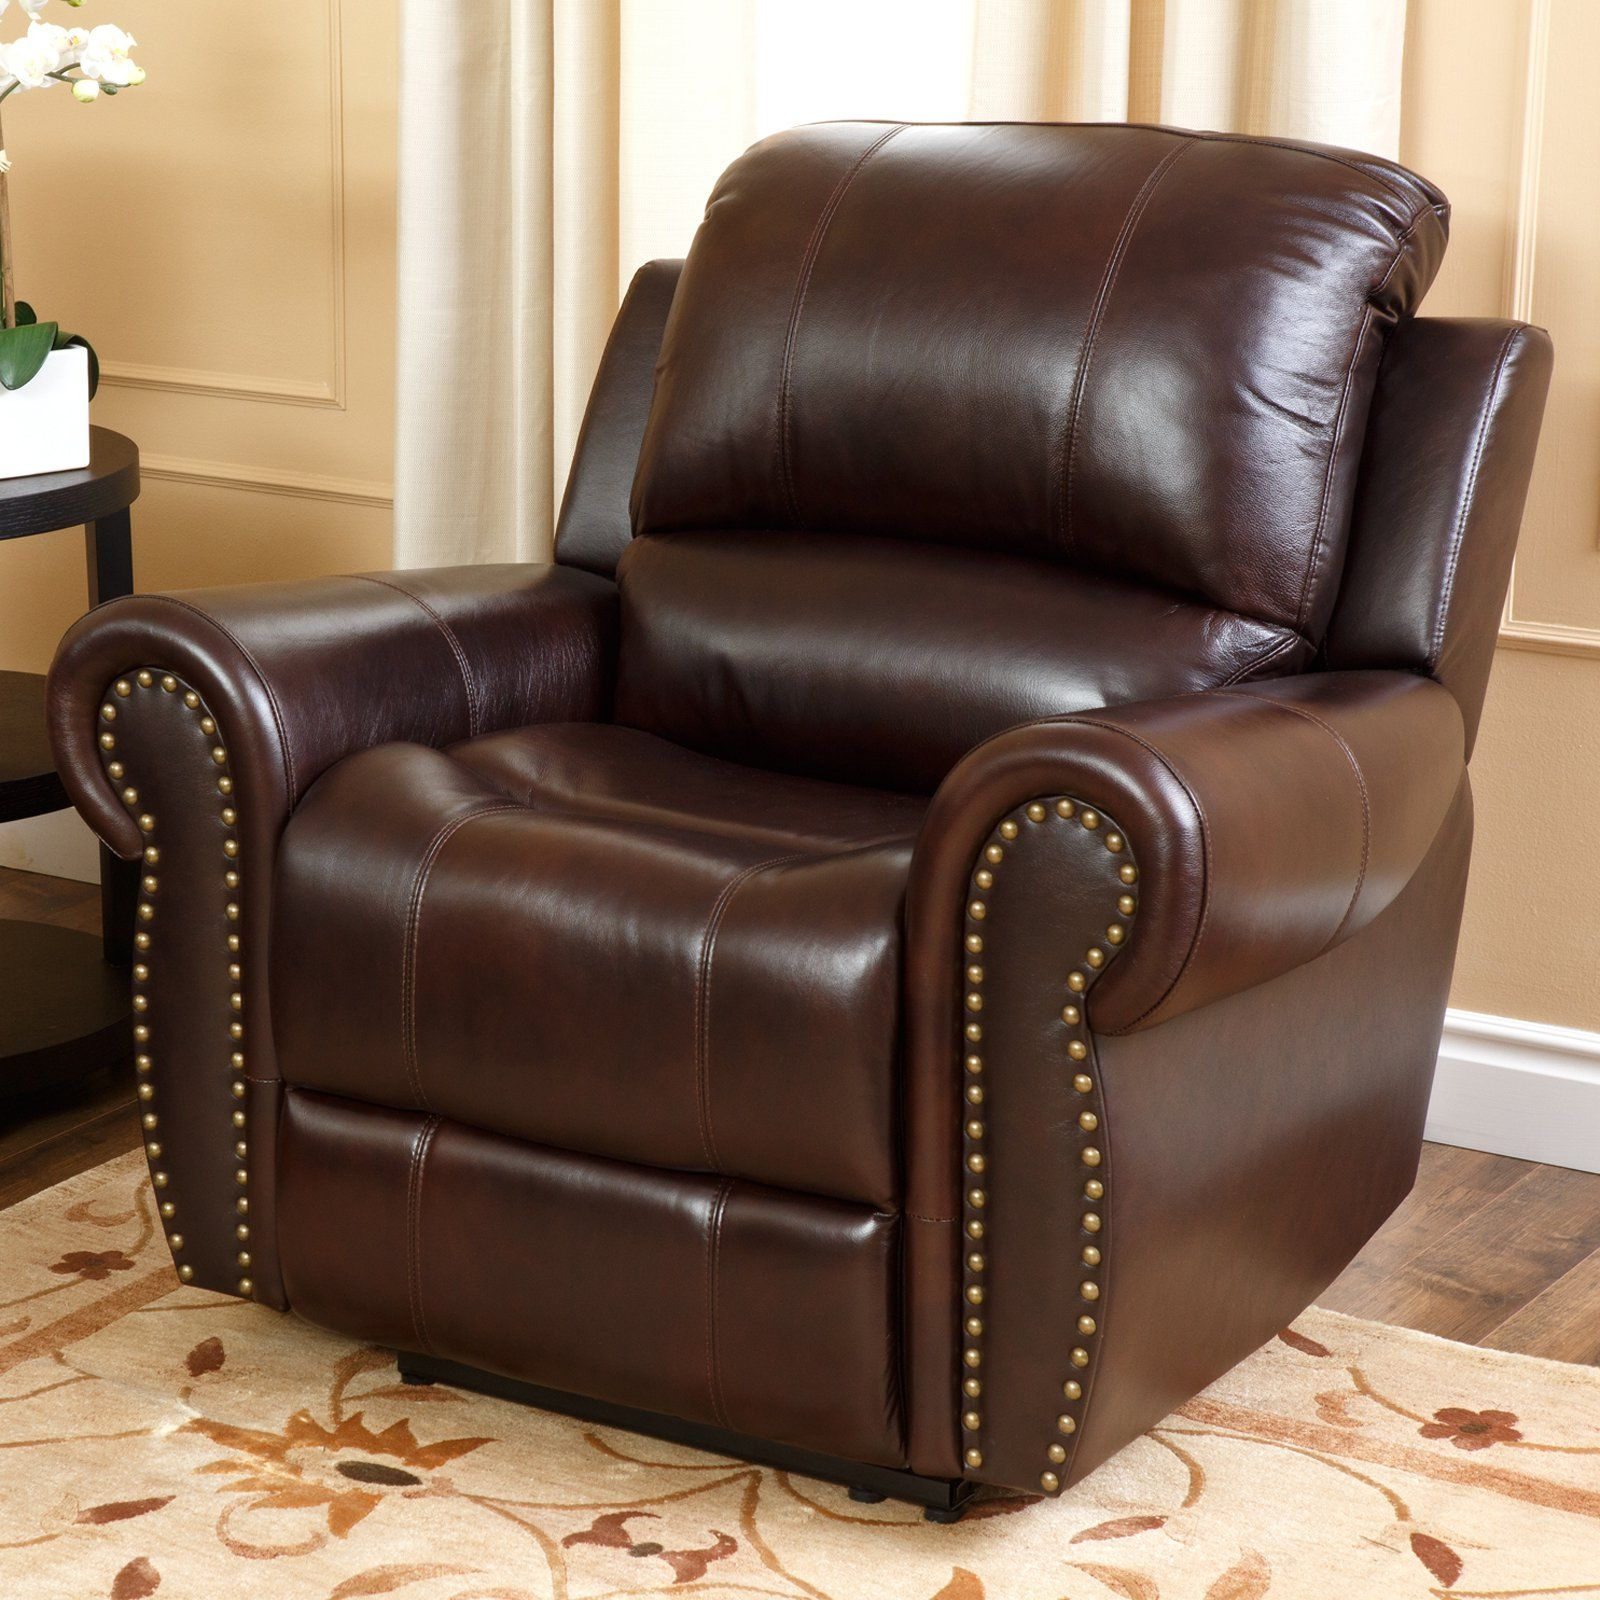 reclining armchairs living room best rooms pictures have to it abbyson lexington italian leather chair with nailheads 994 95 hayneedle